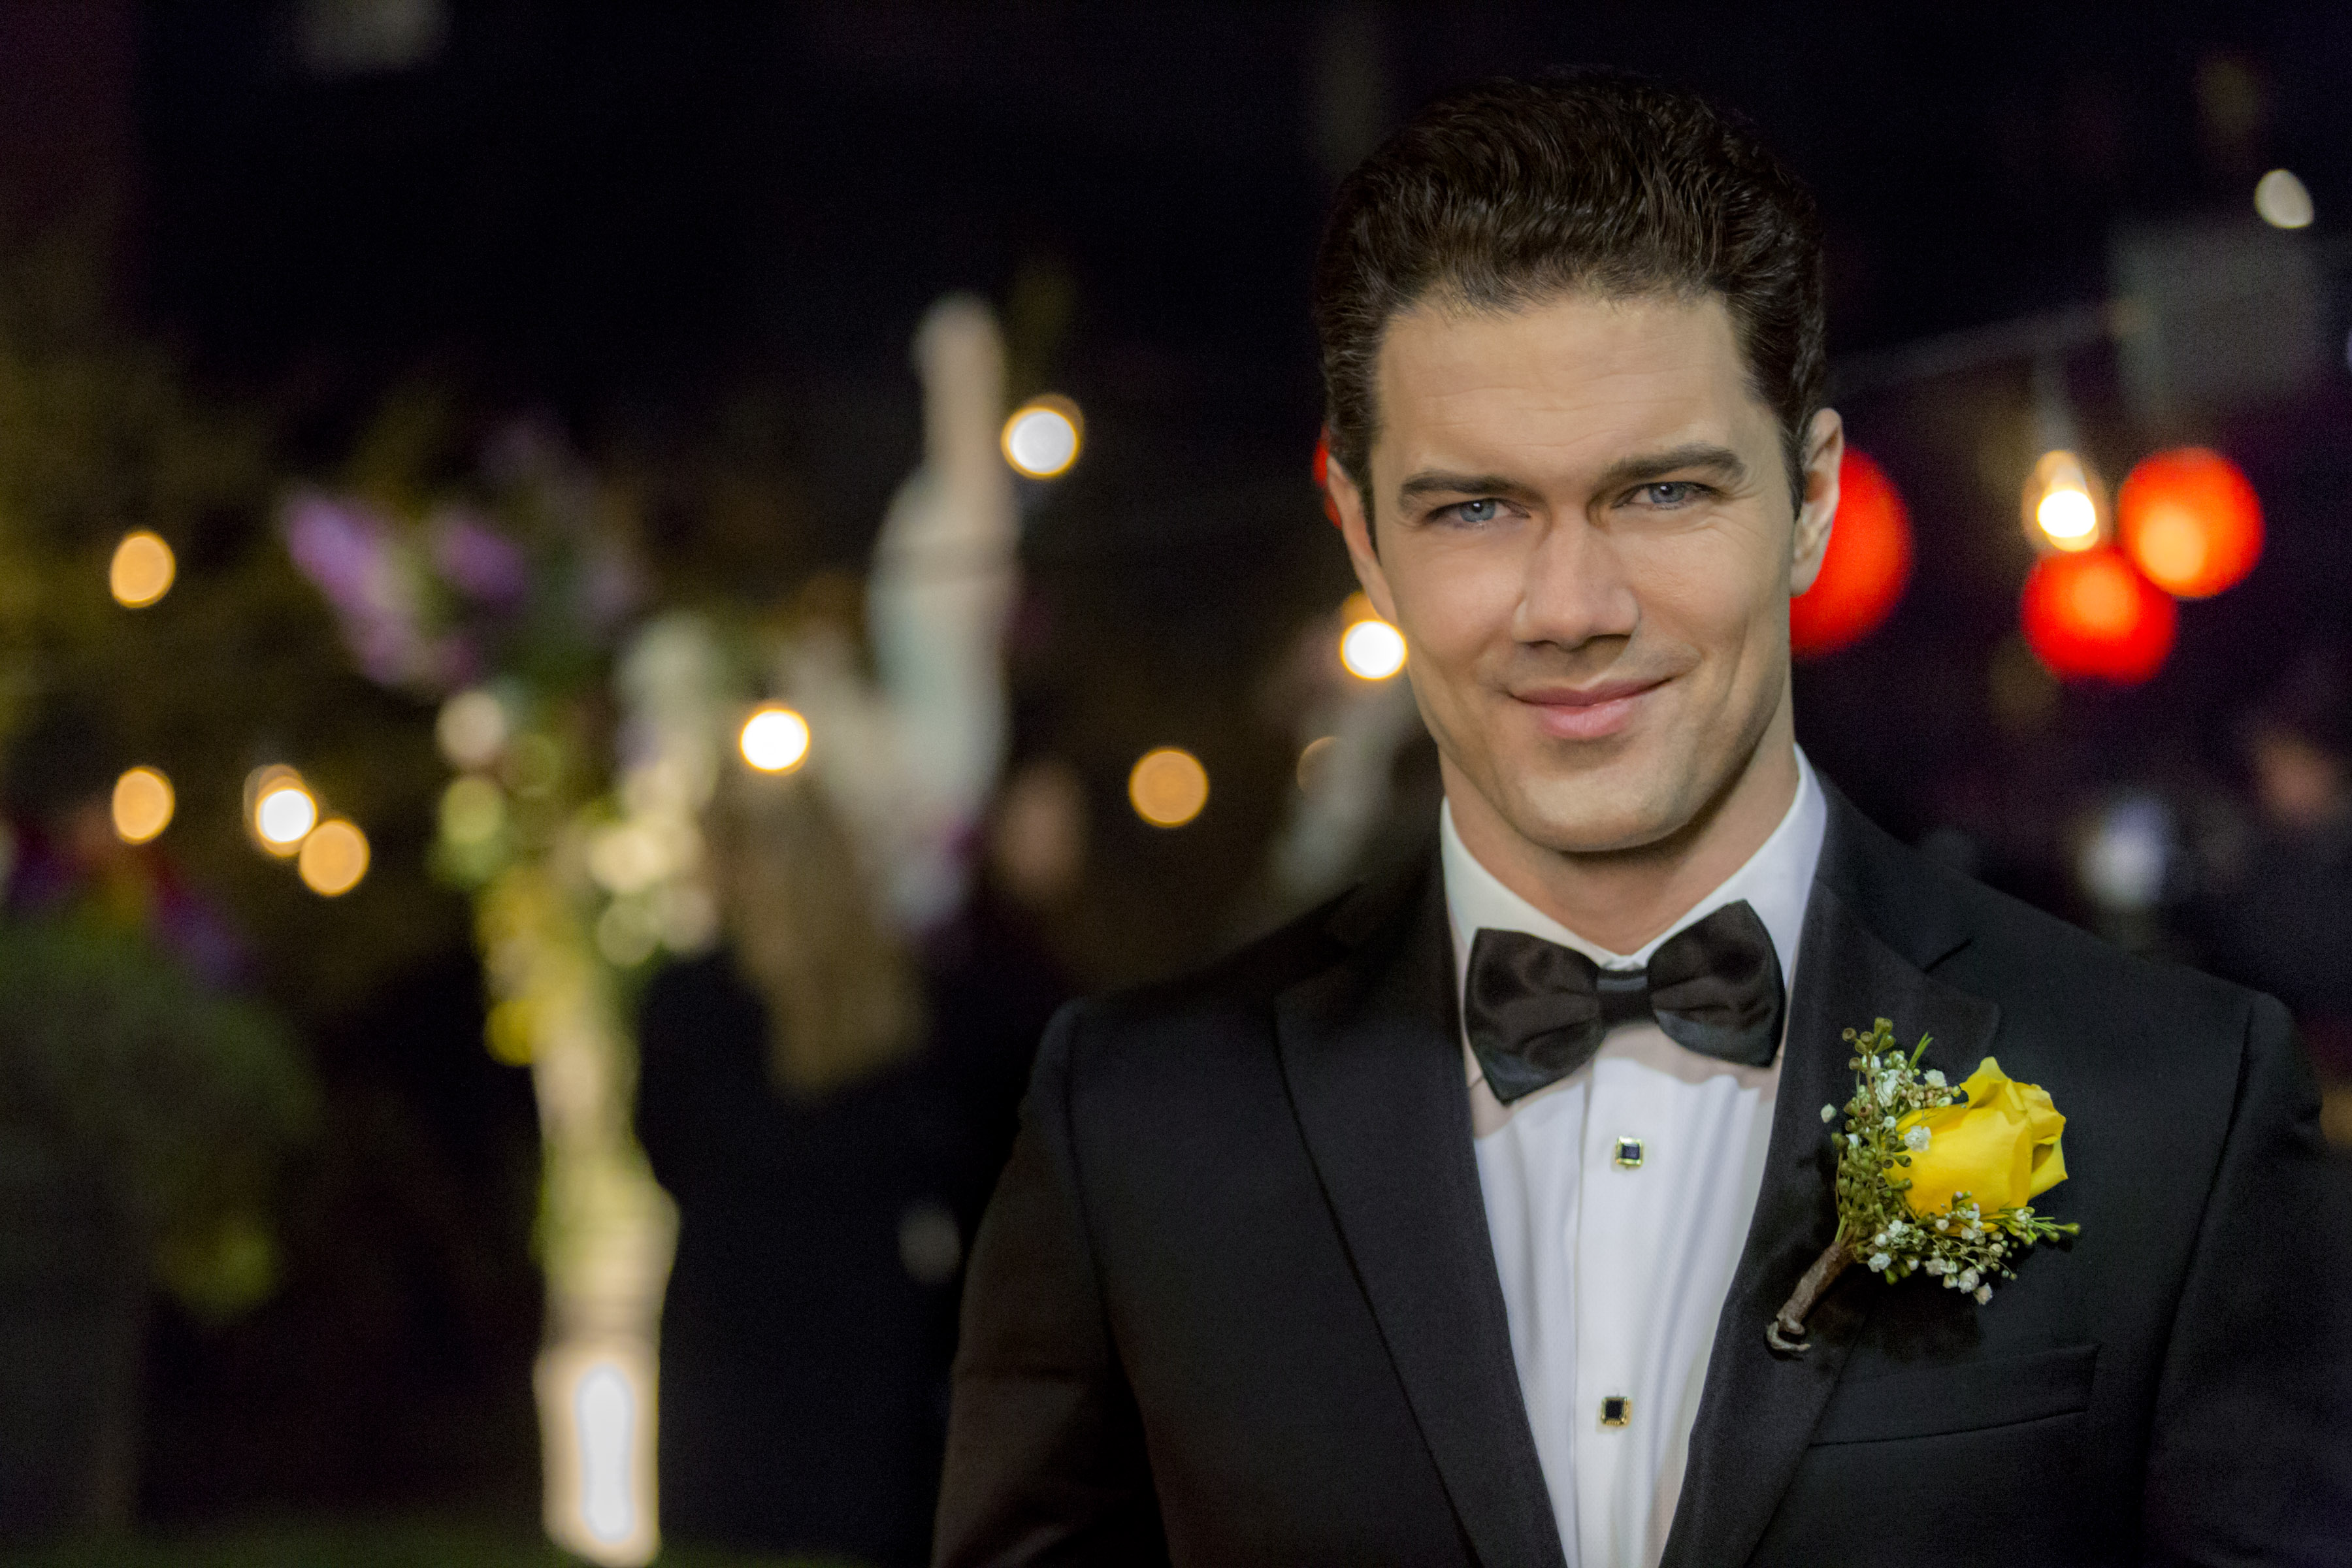 Ryan Paevey Previews the Hallmark Channel Sequel, Marrying Mr. Darcy